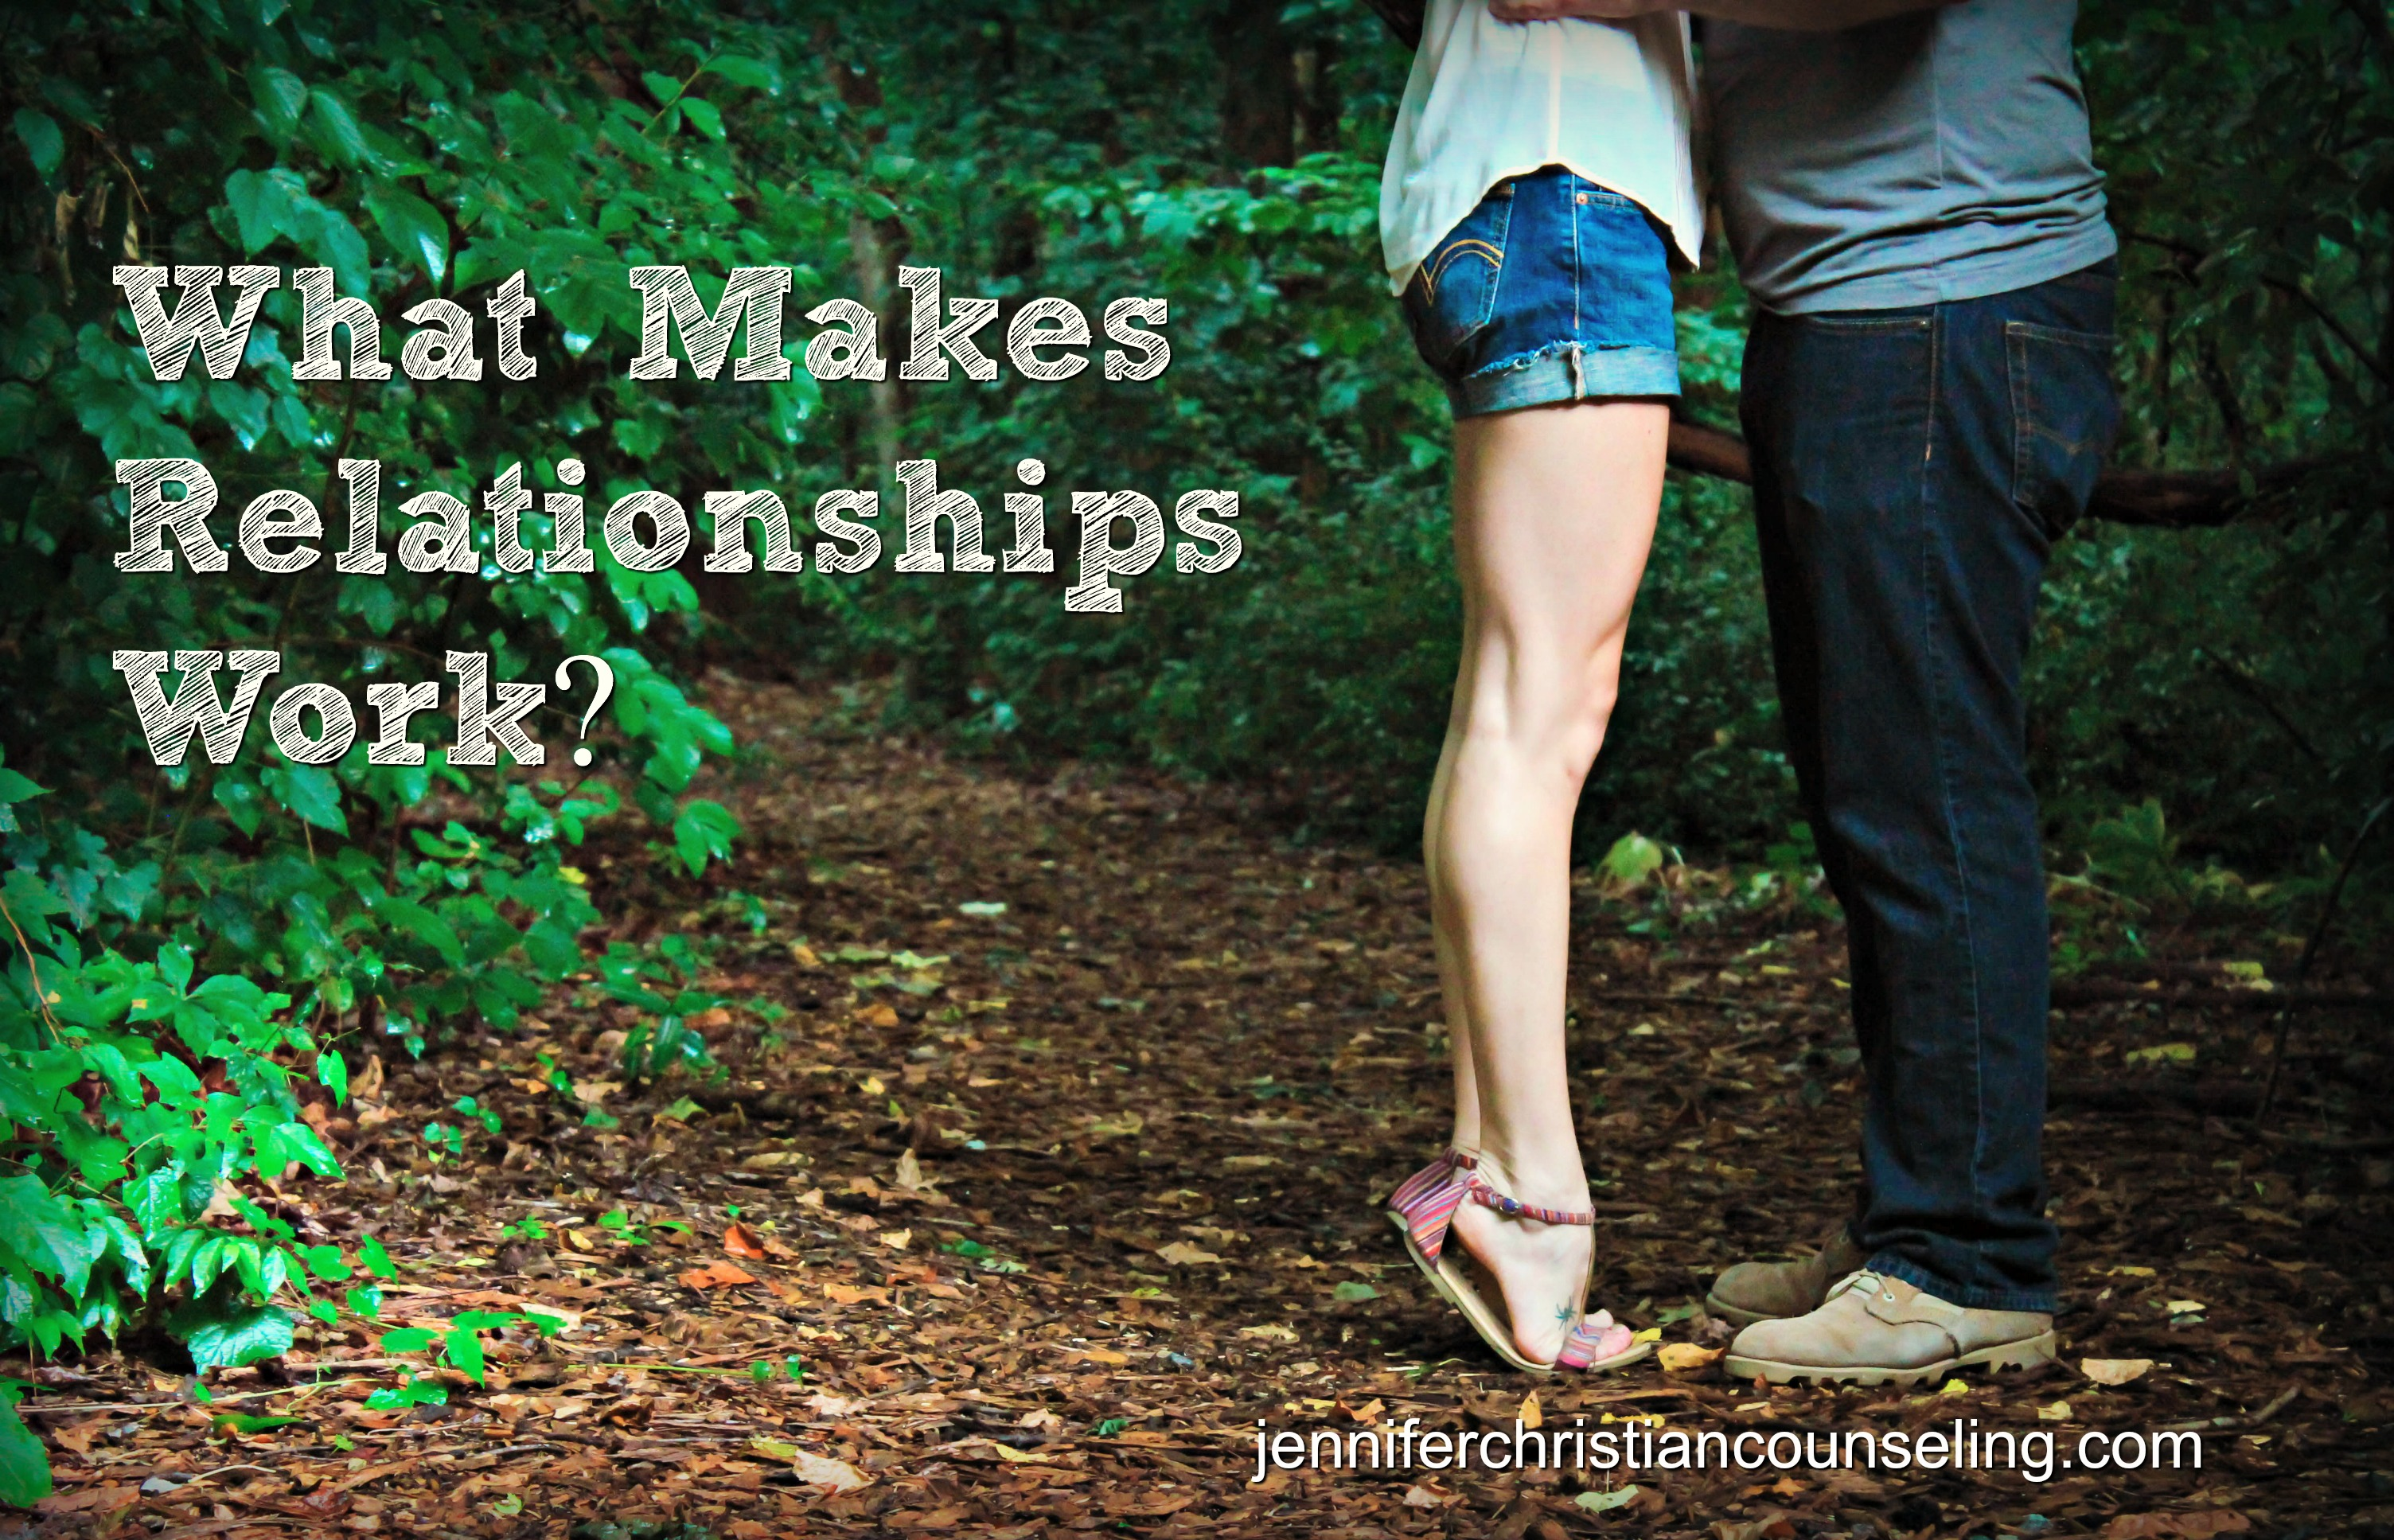 What Makes Relationships Work